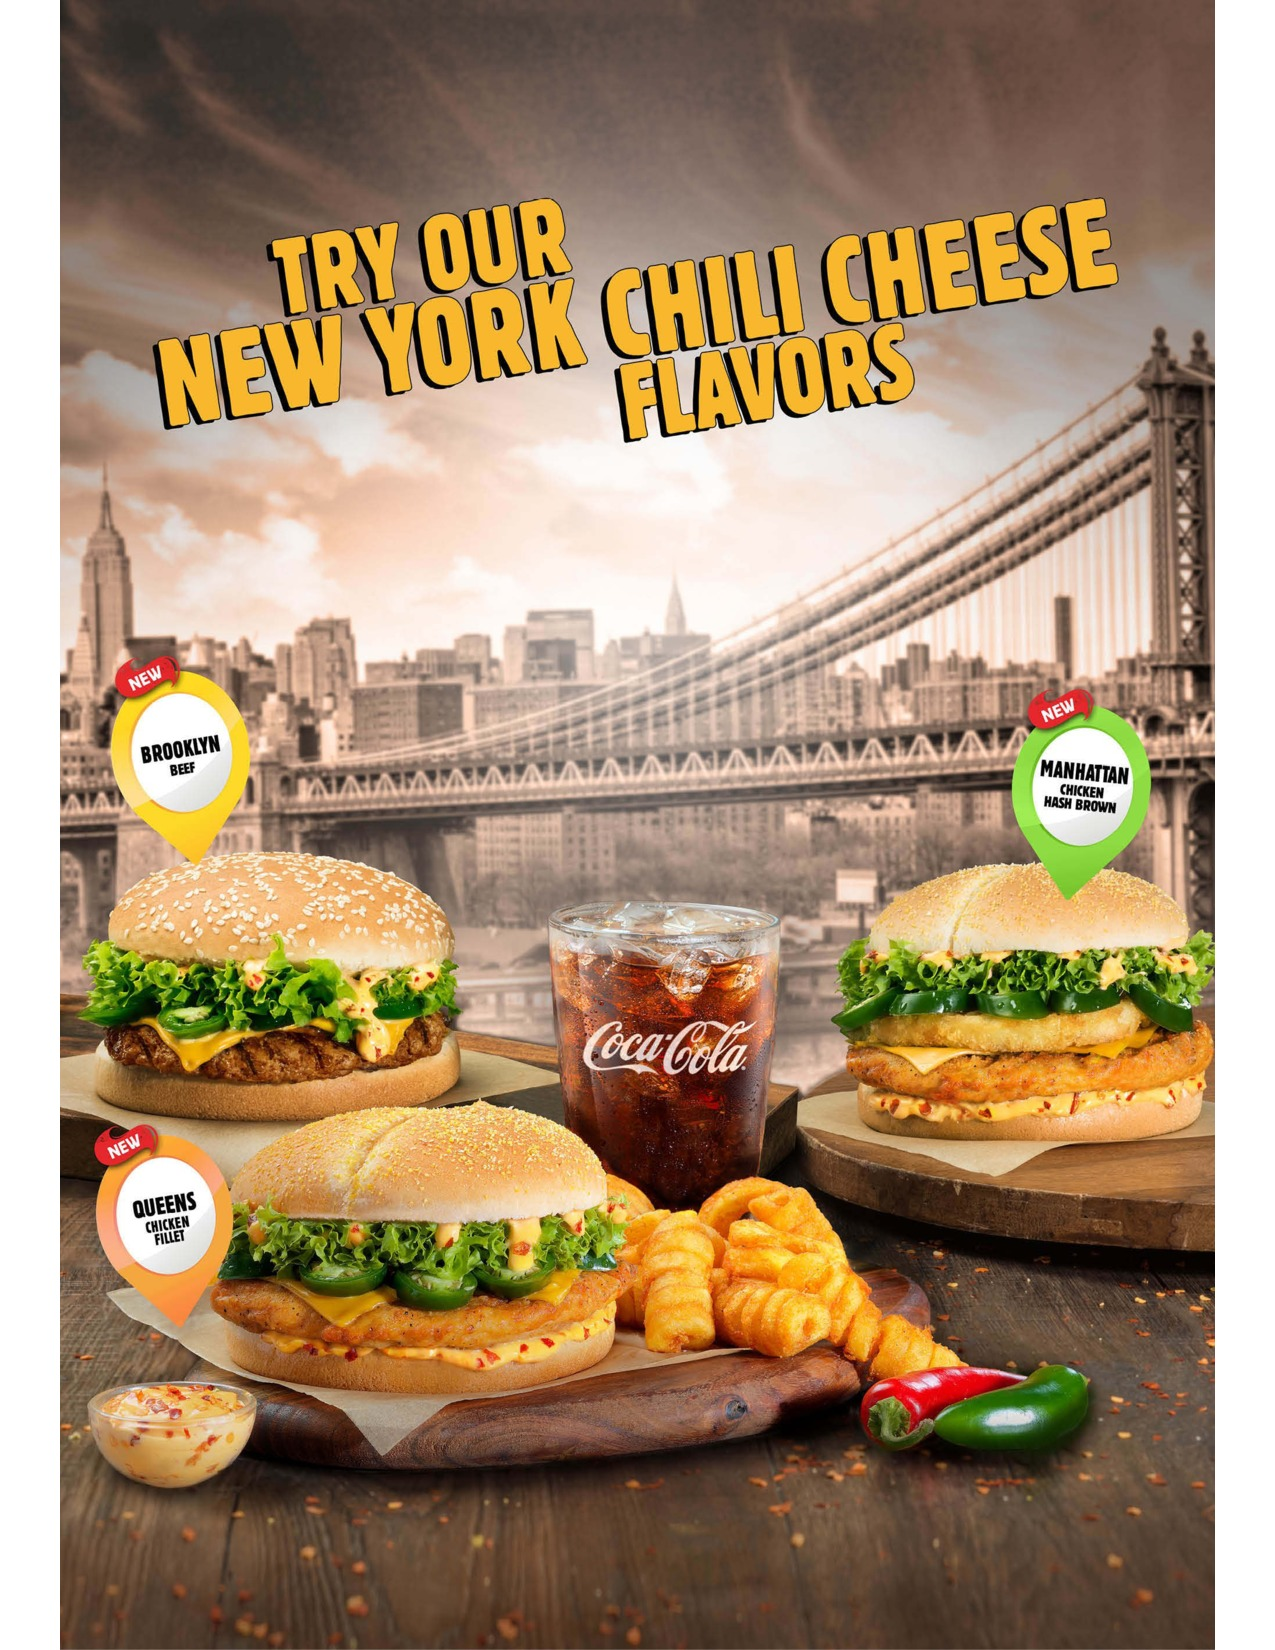 try-our-new-york-chili-cheese-flavors-kuwait